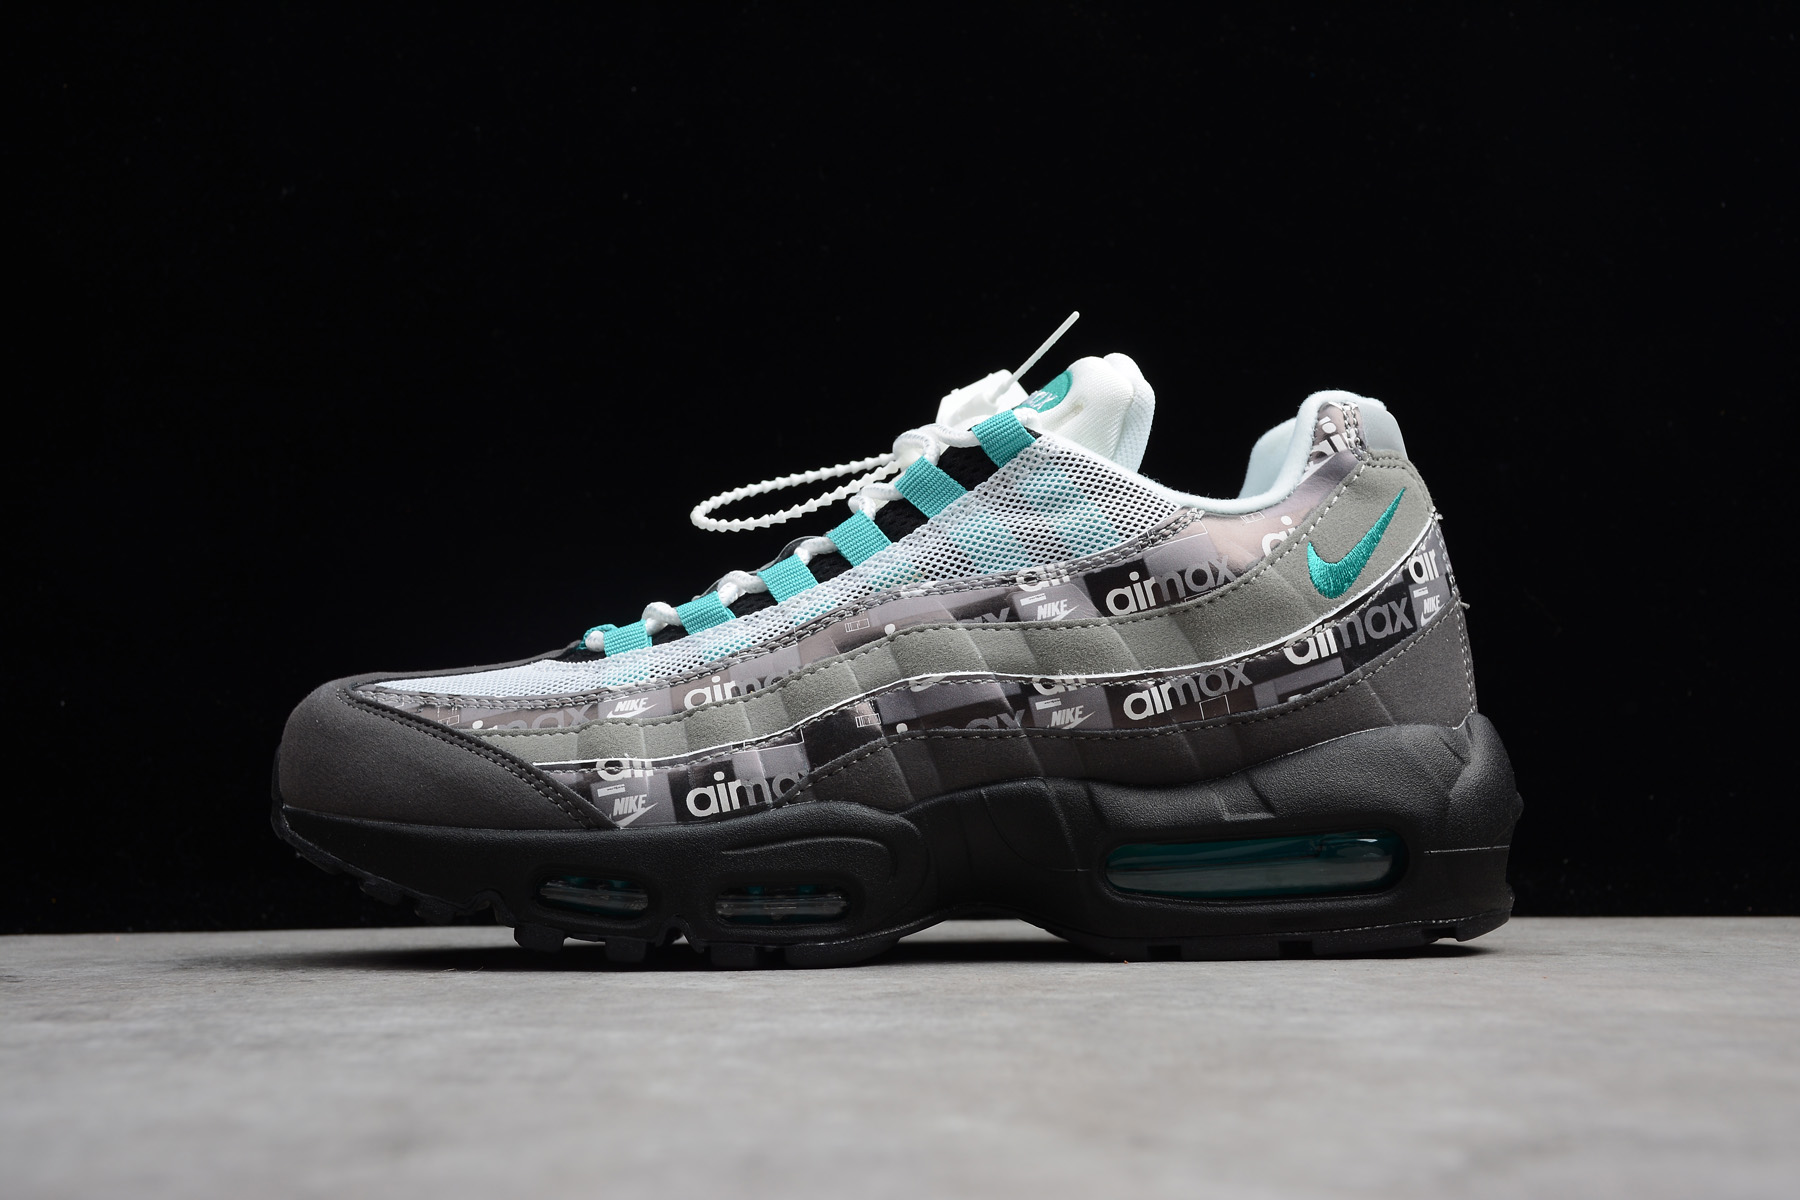 Cheap Wholesale Nike Air Max 95 Prnt AQ0925-001 Black Clear Jade Medium ASH Noir Cendre Moyen Jade Claire- www.wholesaleflyknit.com